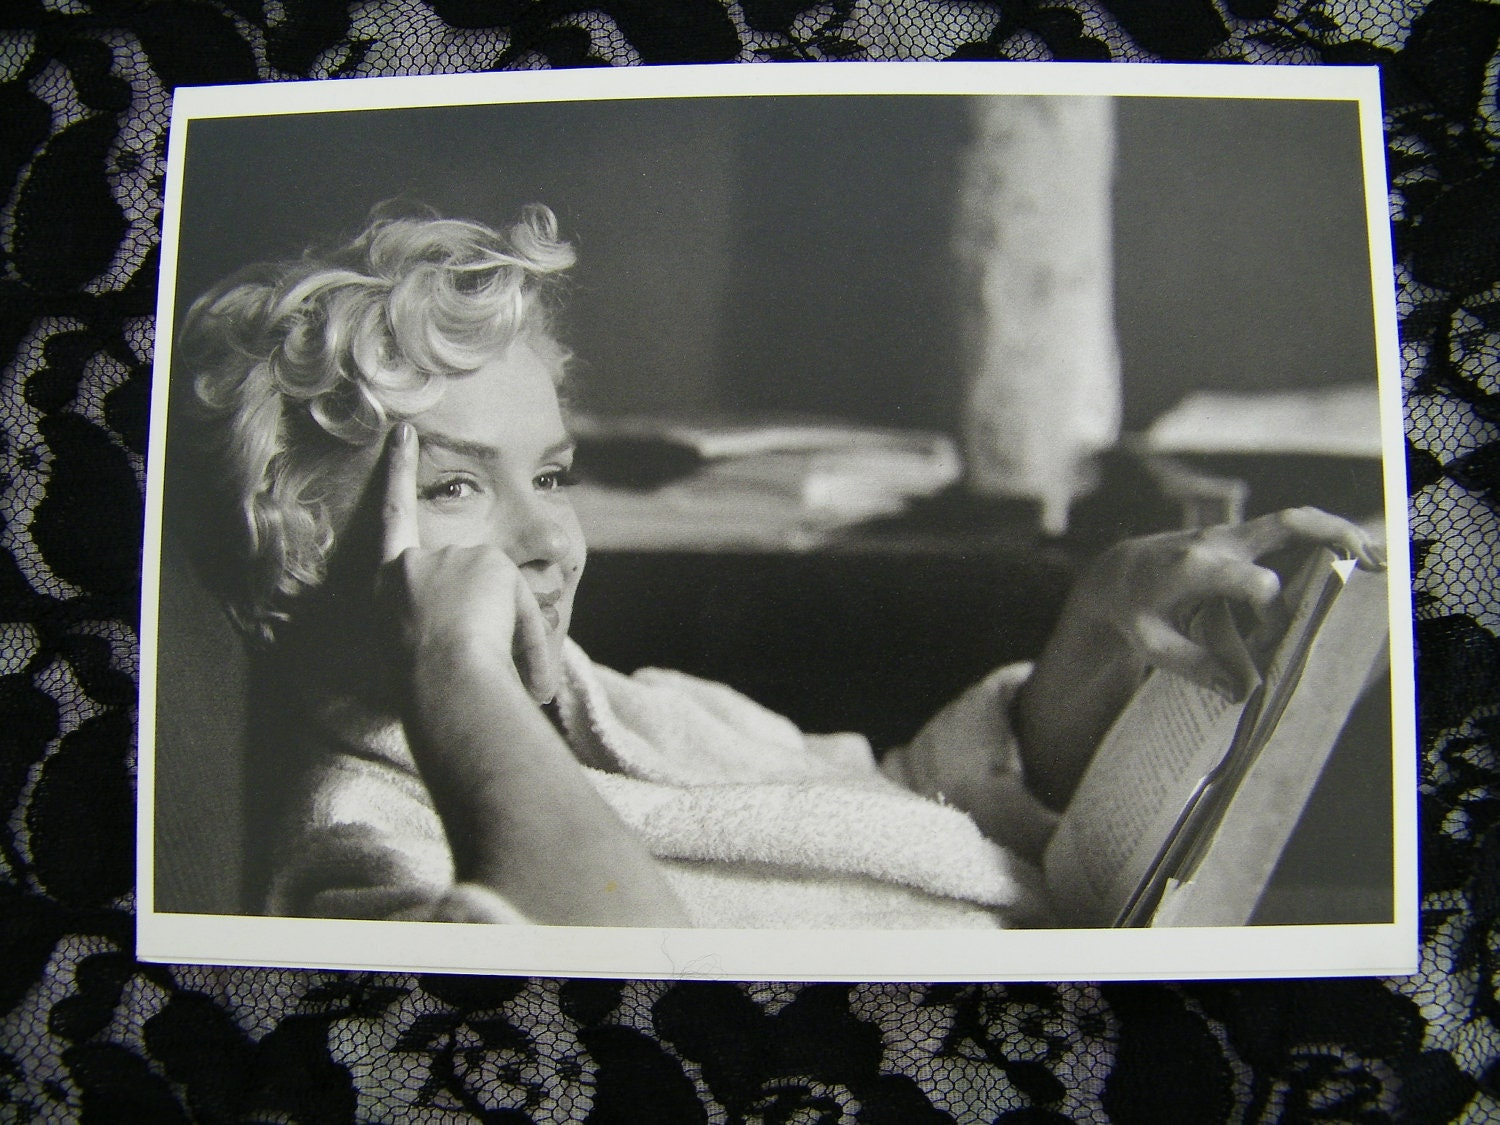 FREE SHIPPING Vintage 1980s Black & White Marilyn Monroe Plain Greeting Card Printed in France - xocream